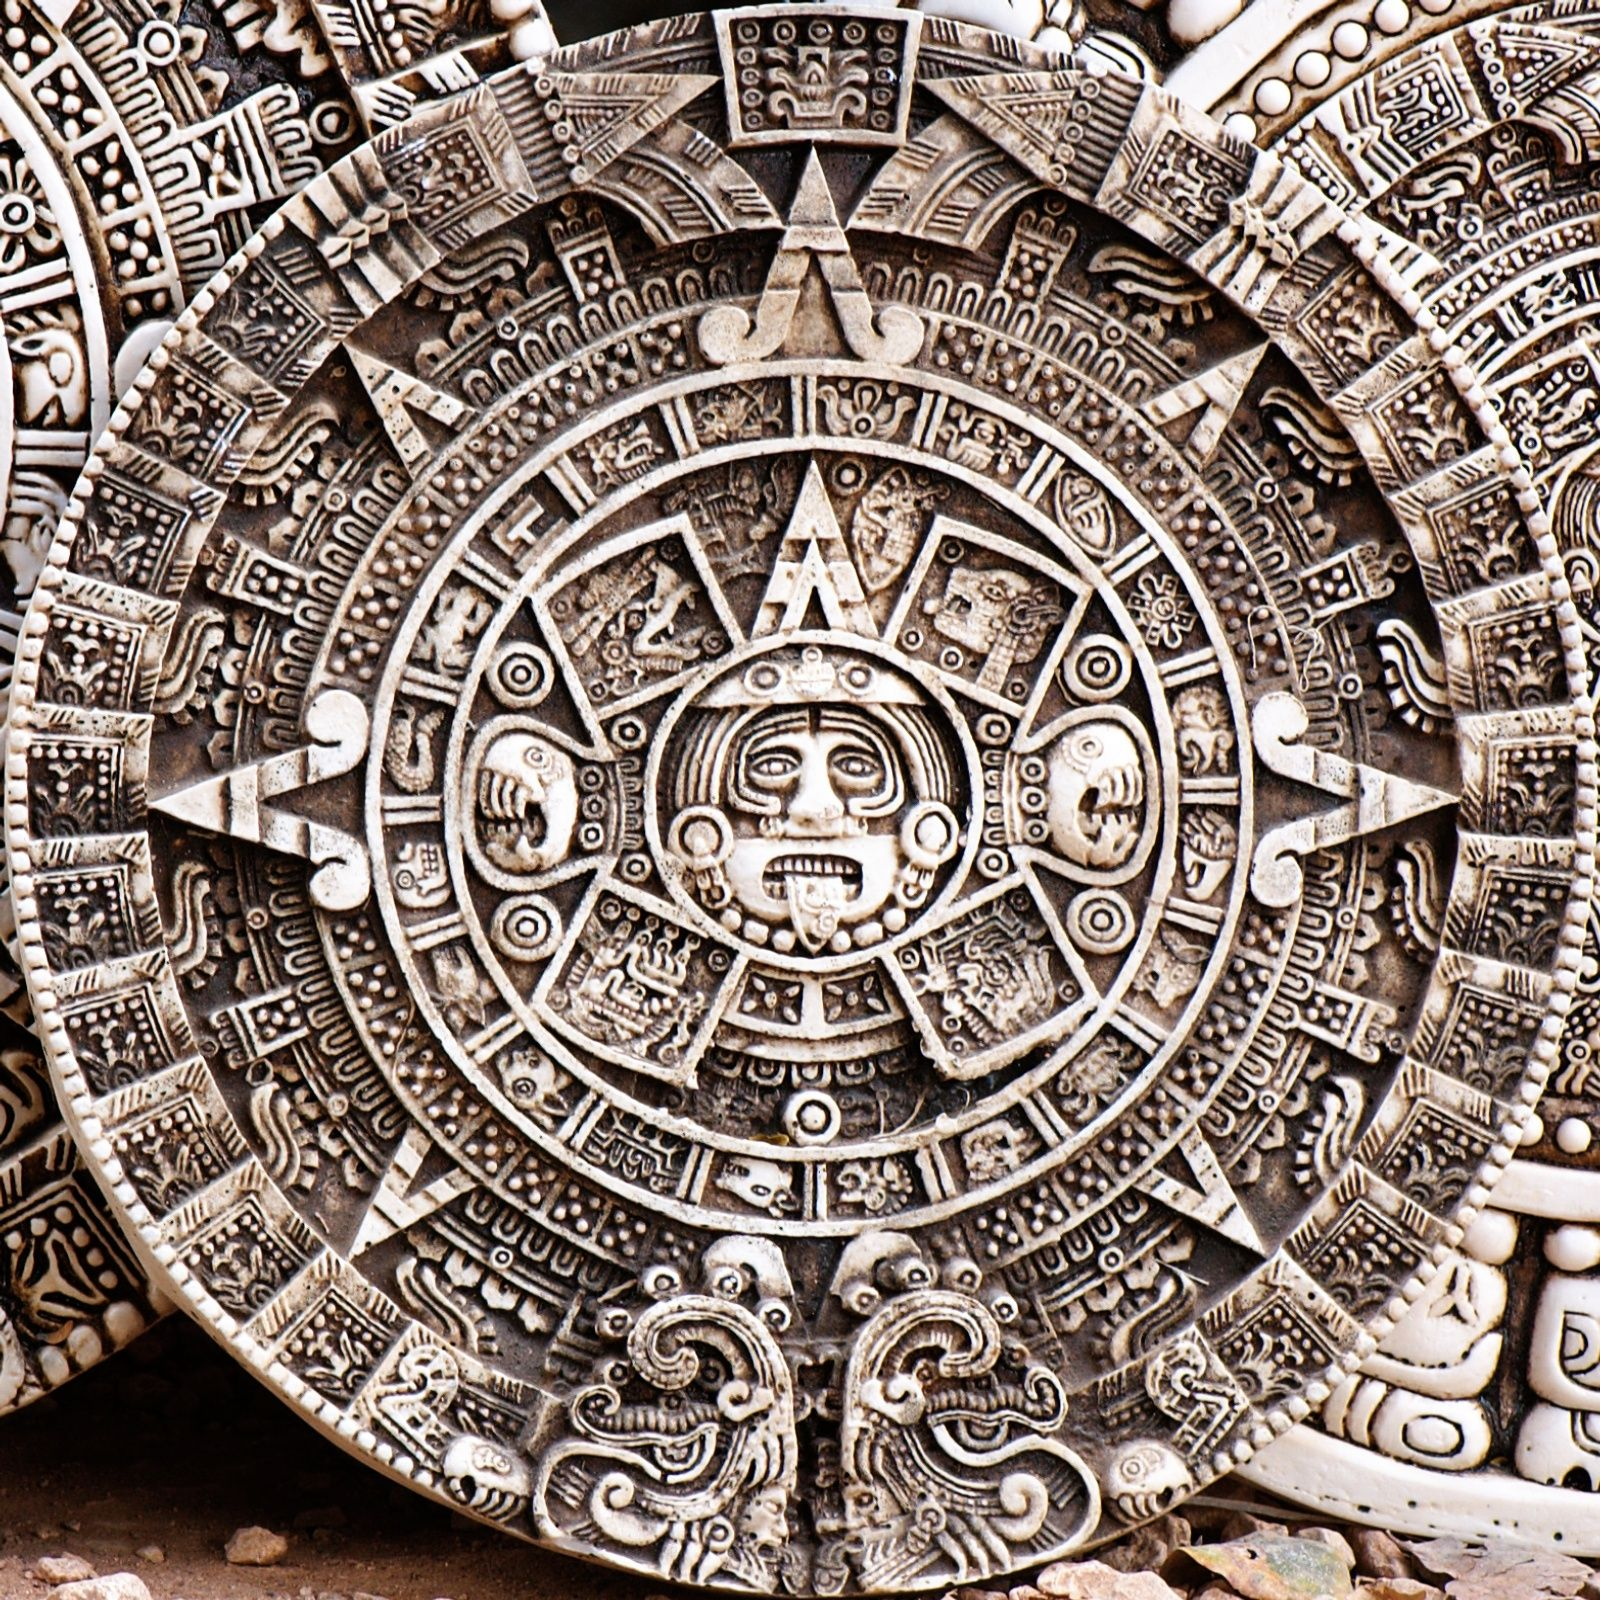 Aztec Calendar The Aztec Calendar Was An Adaptation Of The Mayan